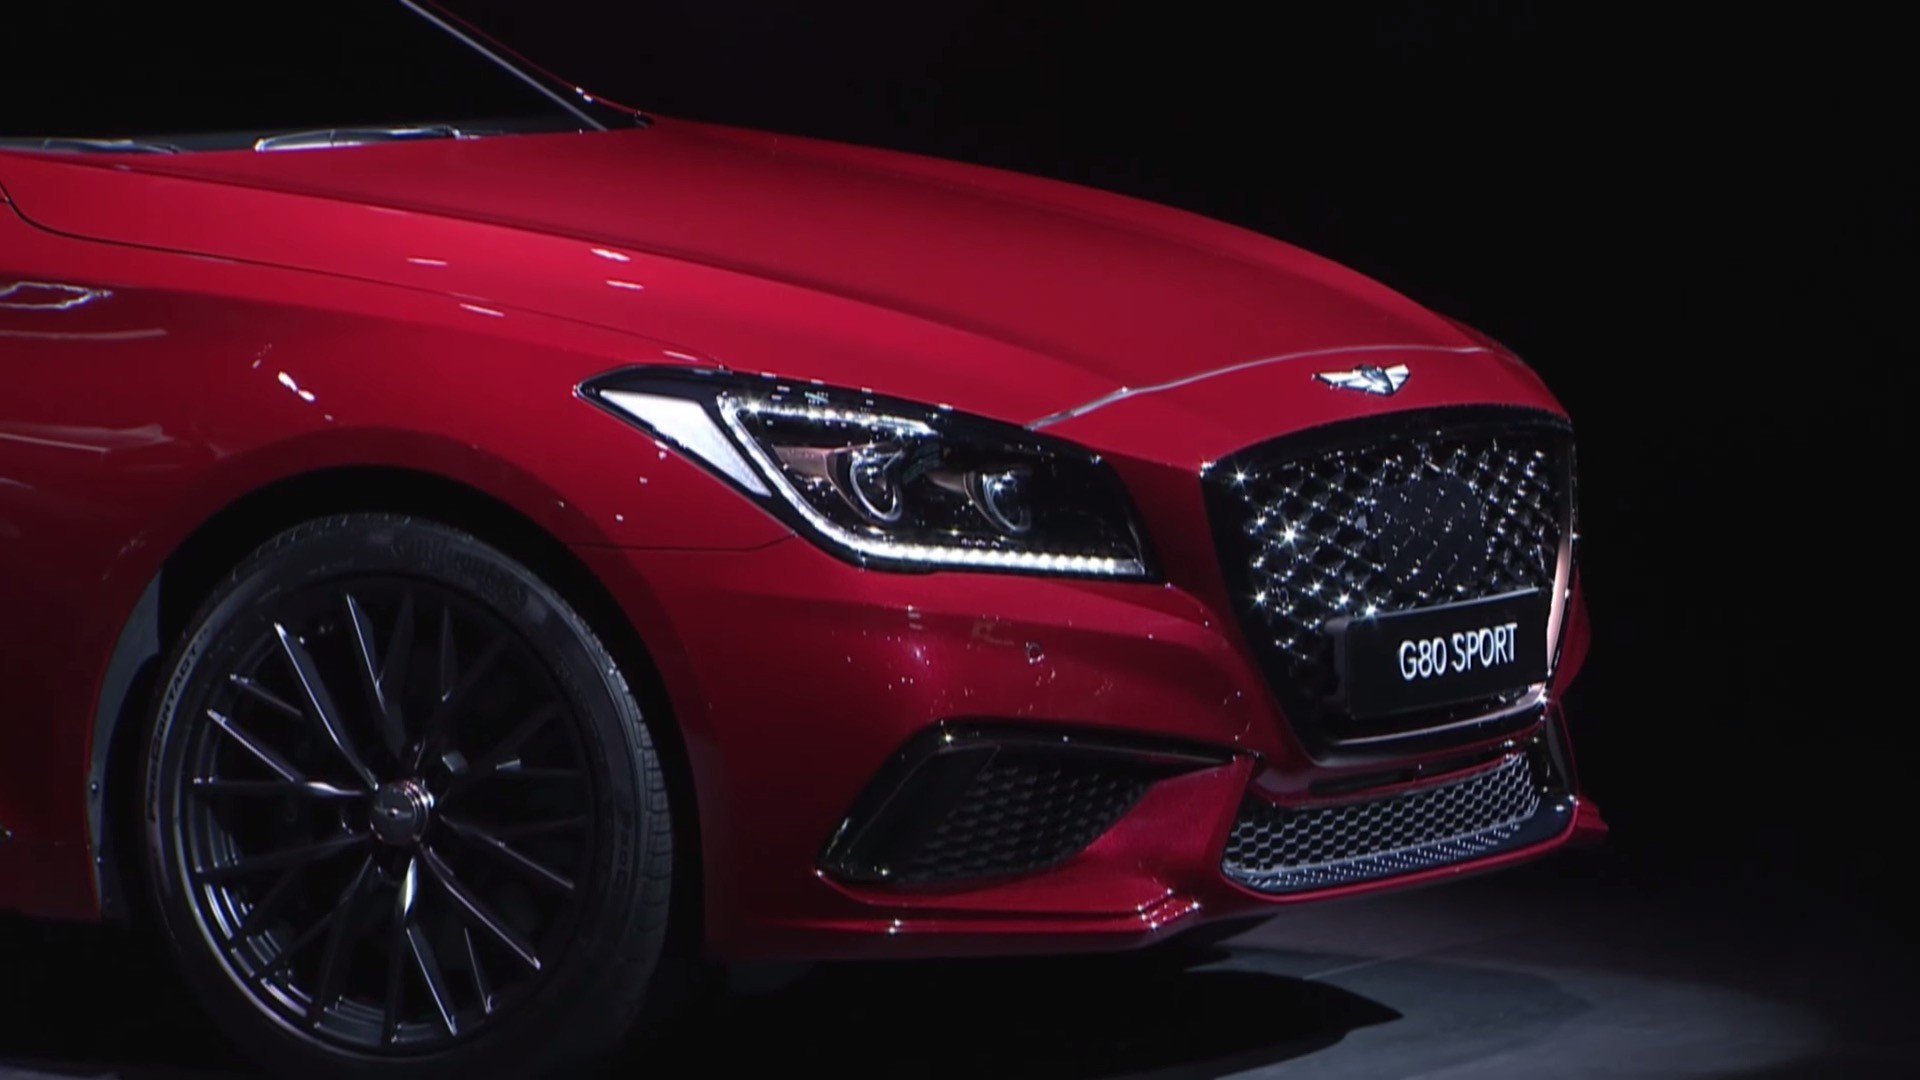 2017 Genesis G80 Unveiled at 2016 Busan Auto Show 1920x1080